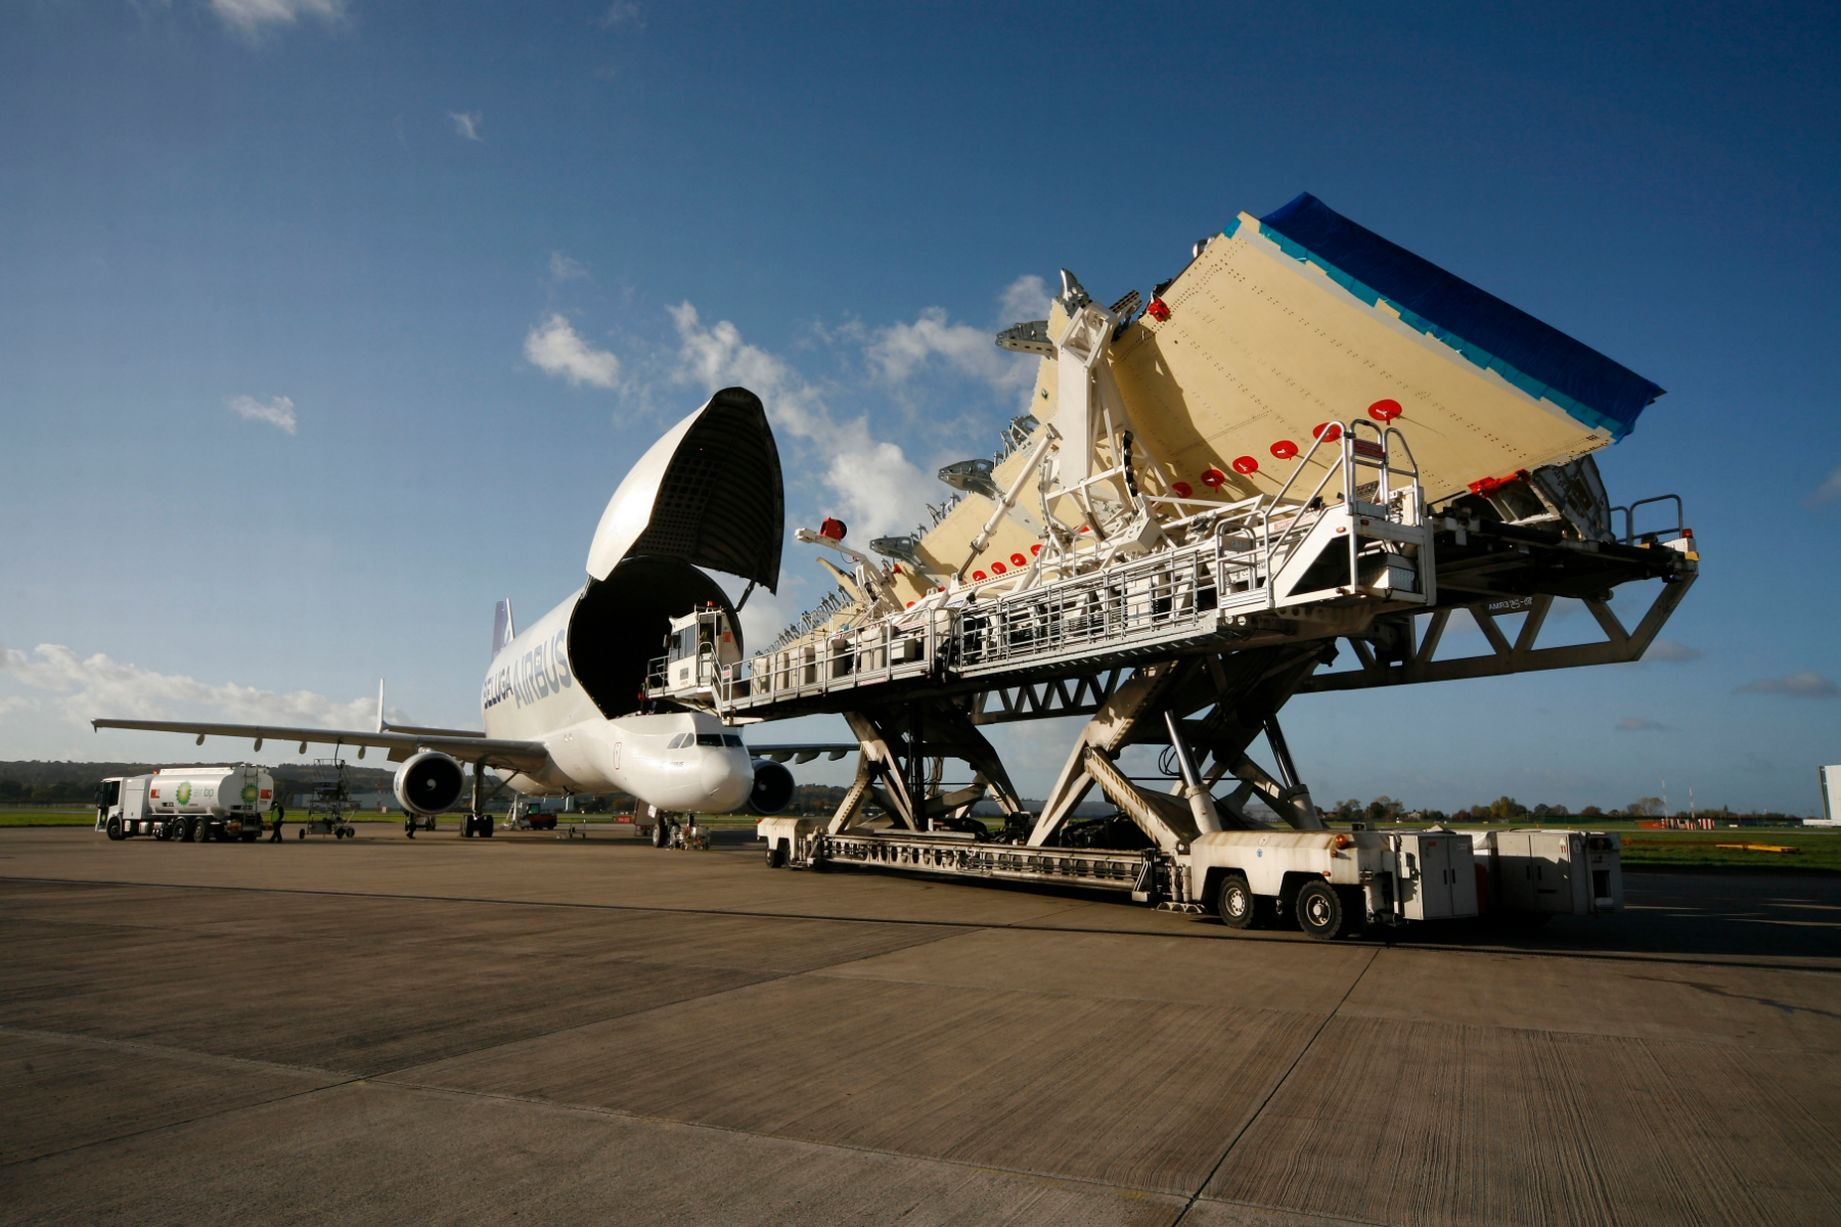 Airbus super transporter.